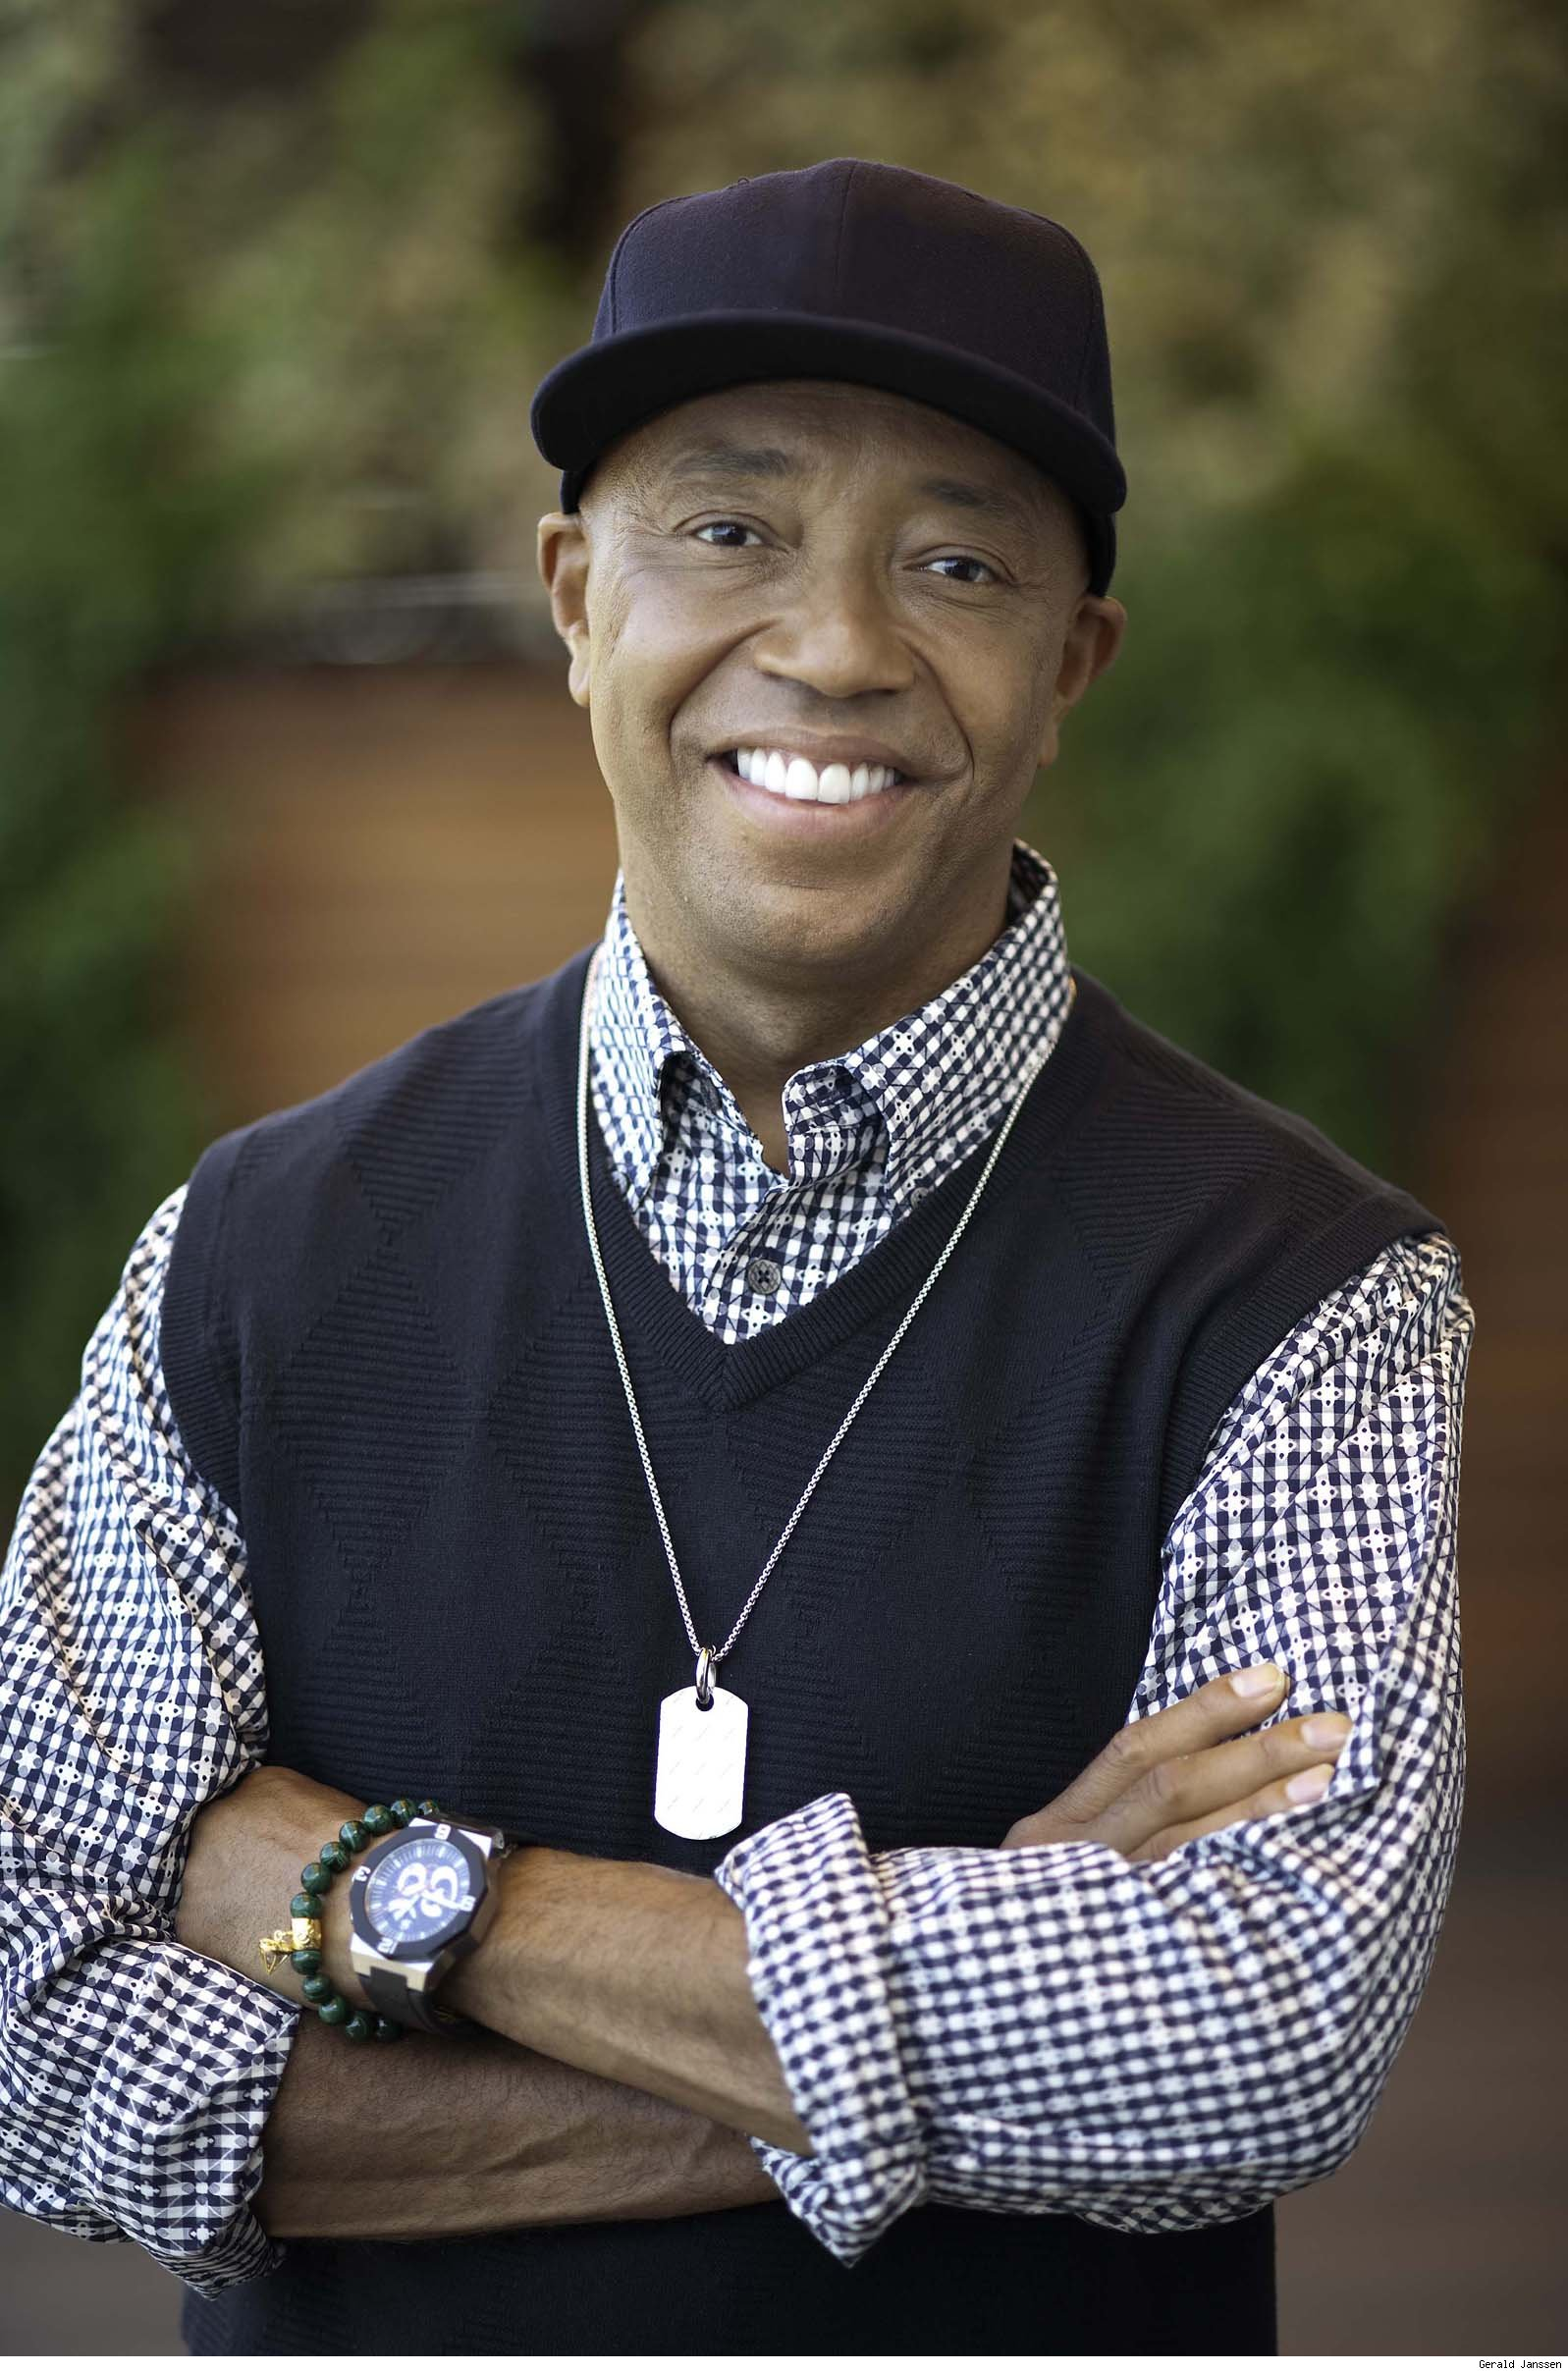 russell simmons A los angeles woman is suing music mogul russell simmons, alleging he raped her at his home in 2016 an attorney for 37-year-old jennifer jarosik filed the.